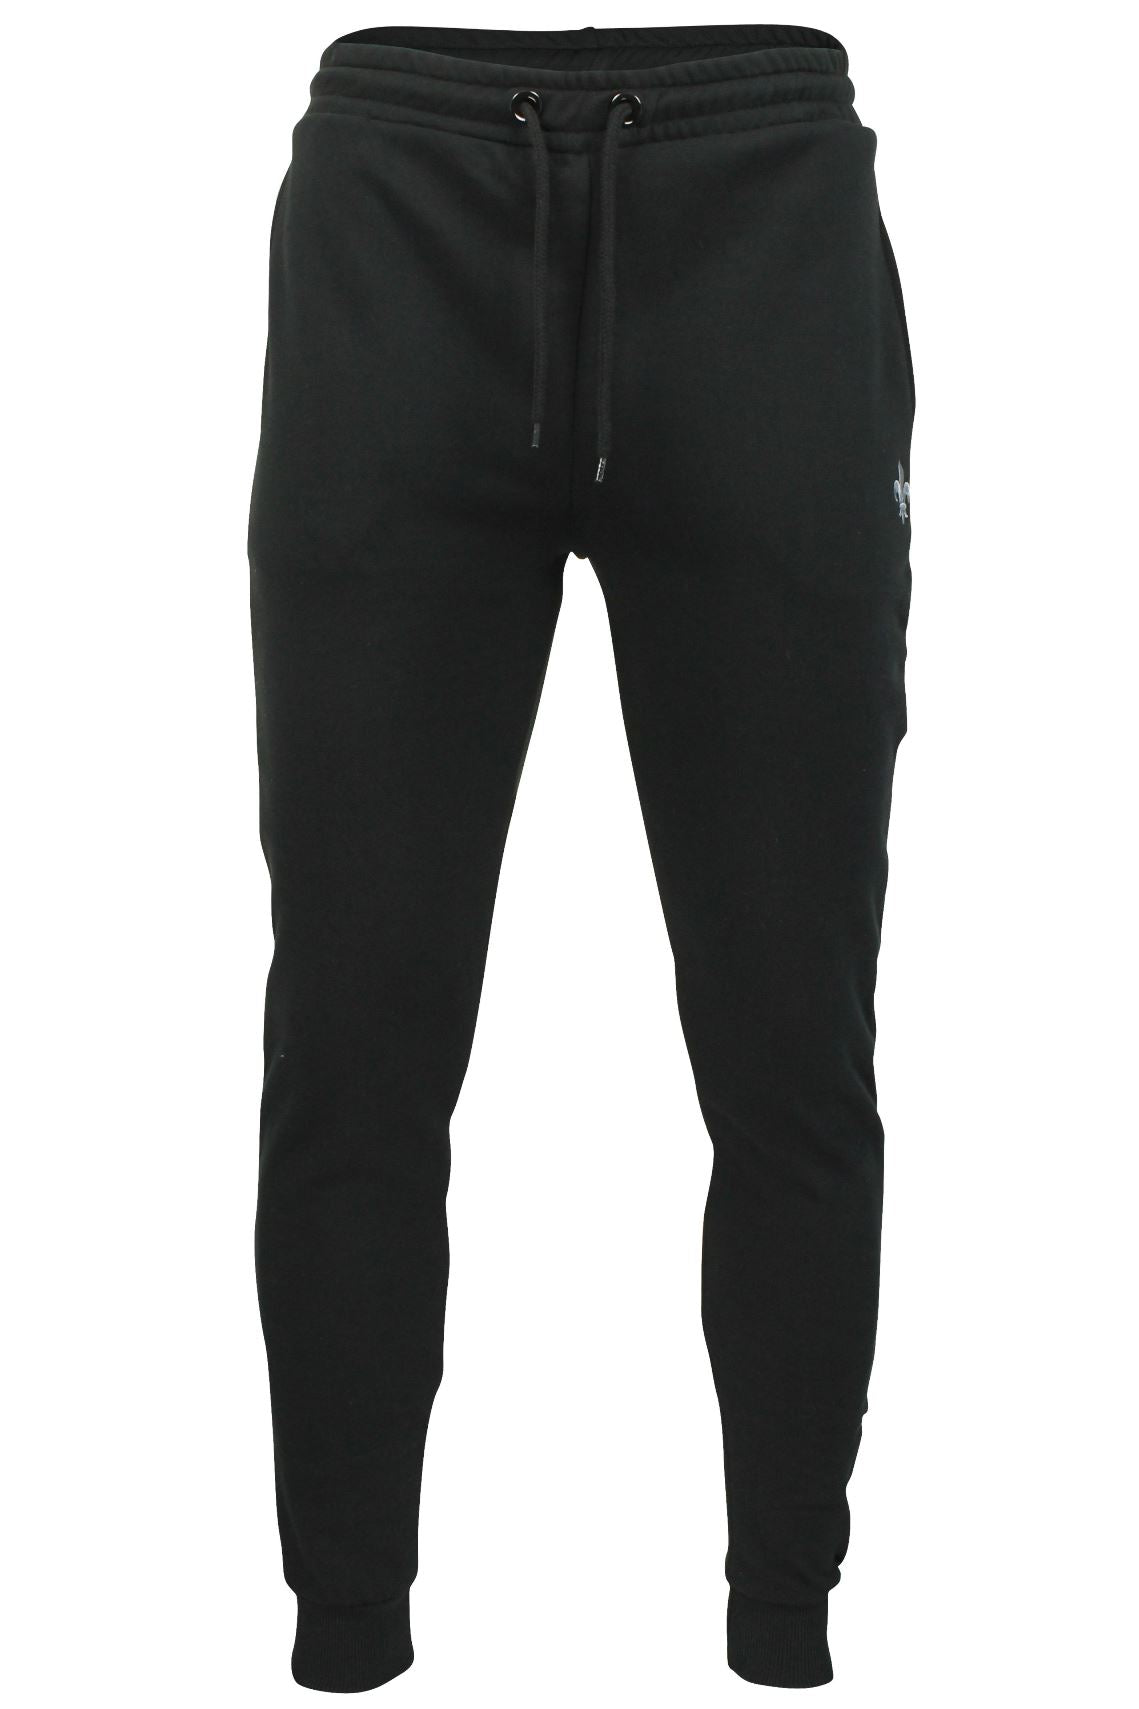 Mens Joggers by Criminal Damage 'Slim Jogger'-Main Image